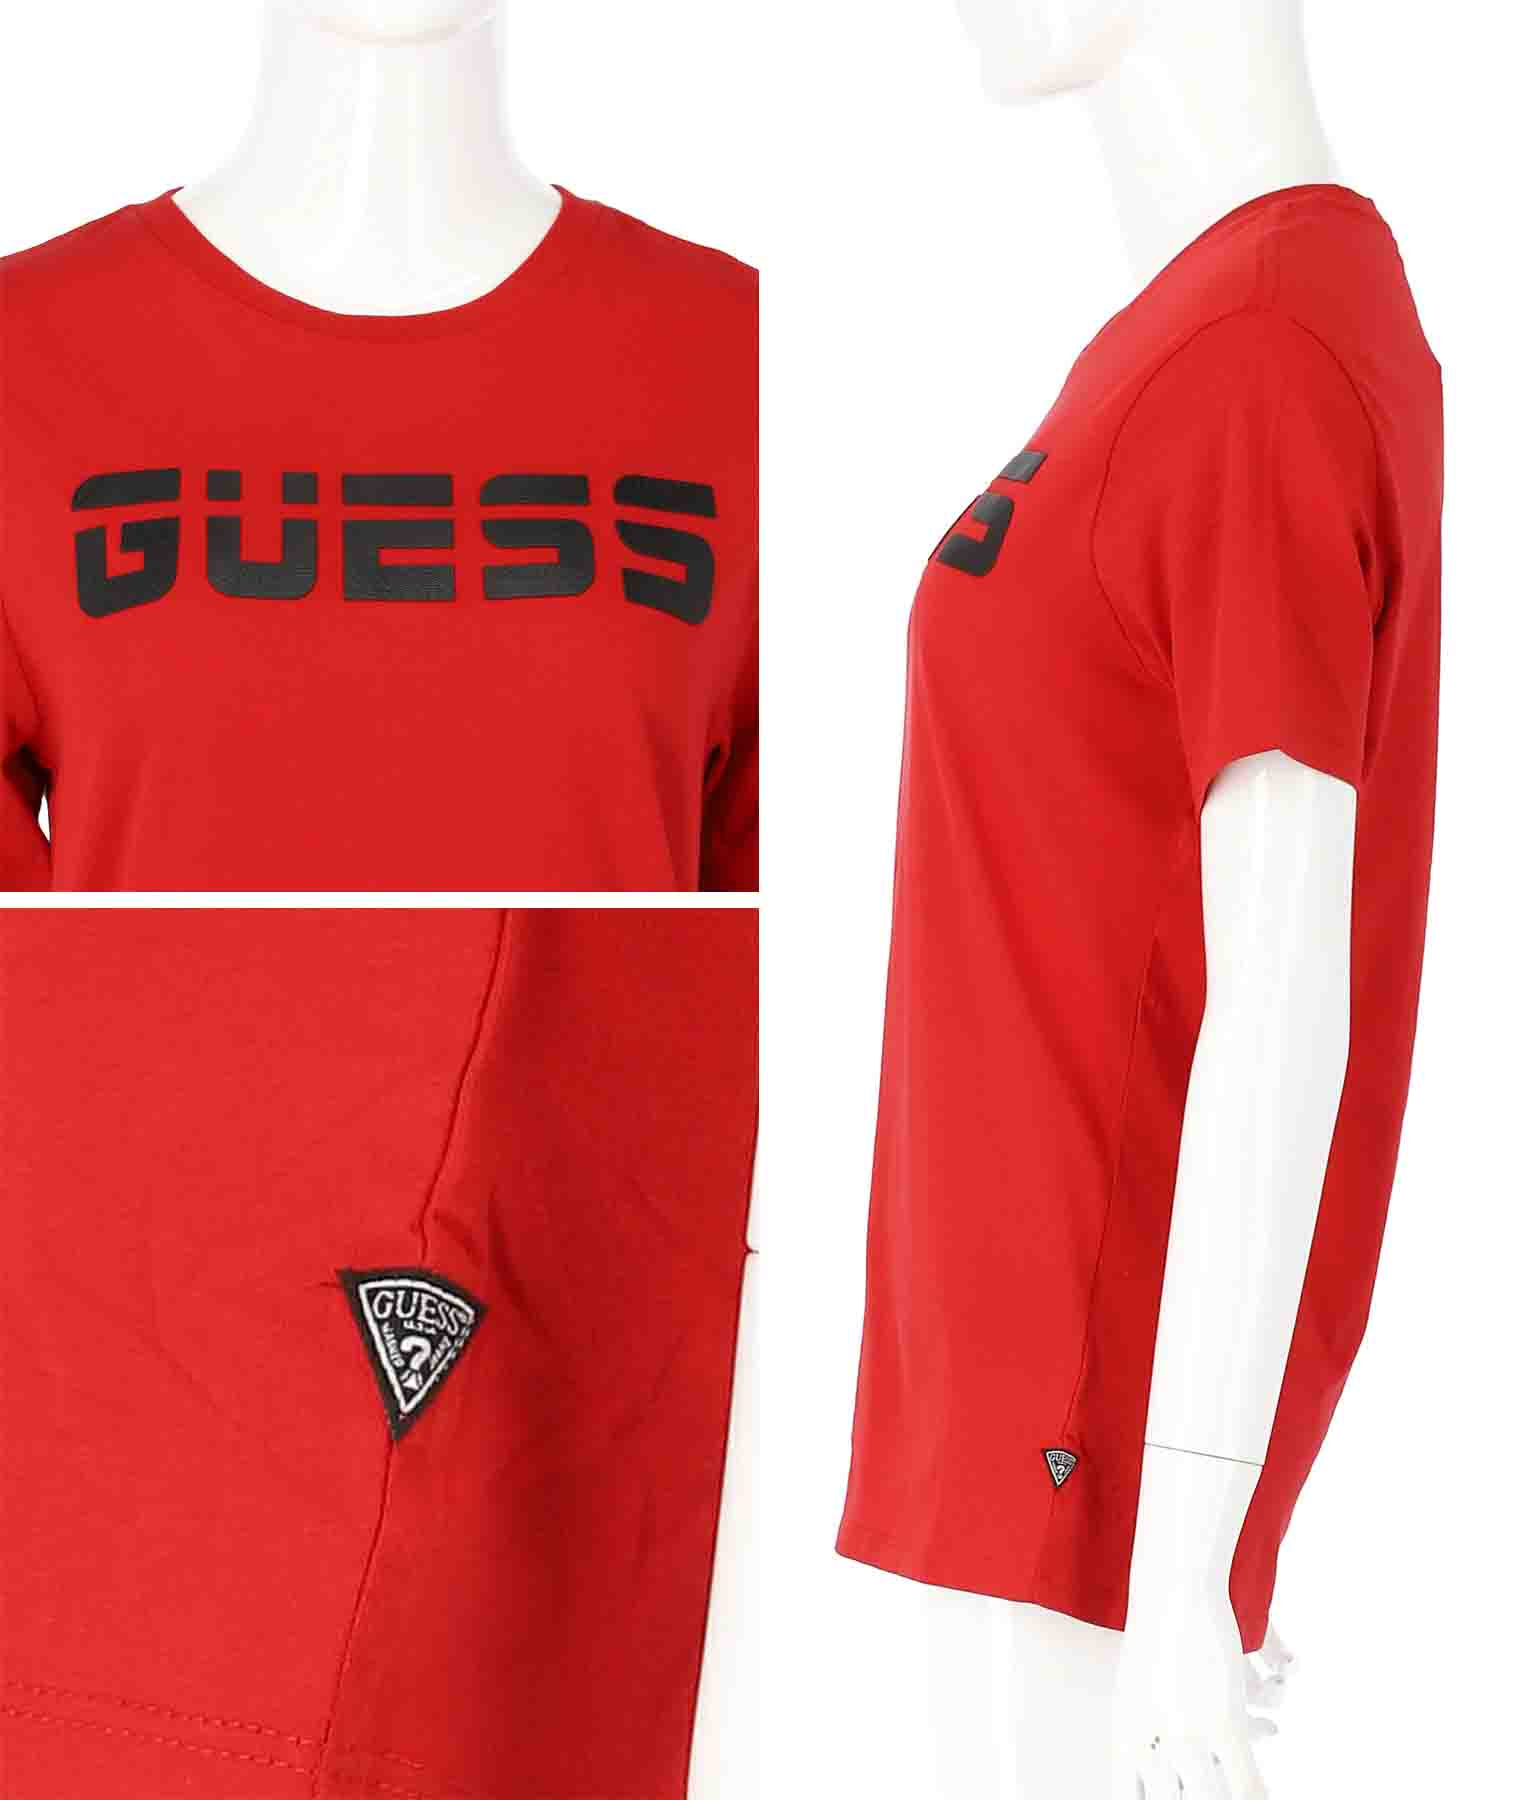 SS BSC ACTIVE LOGO CREW | GUESS